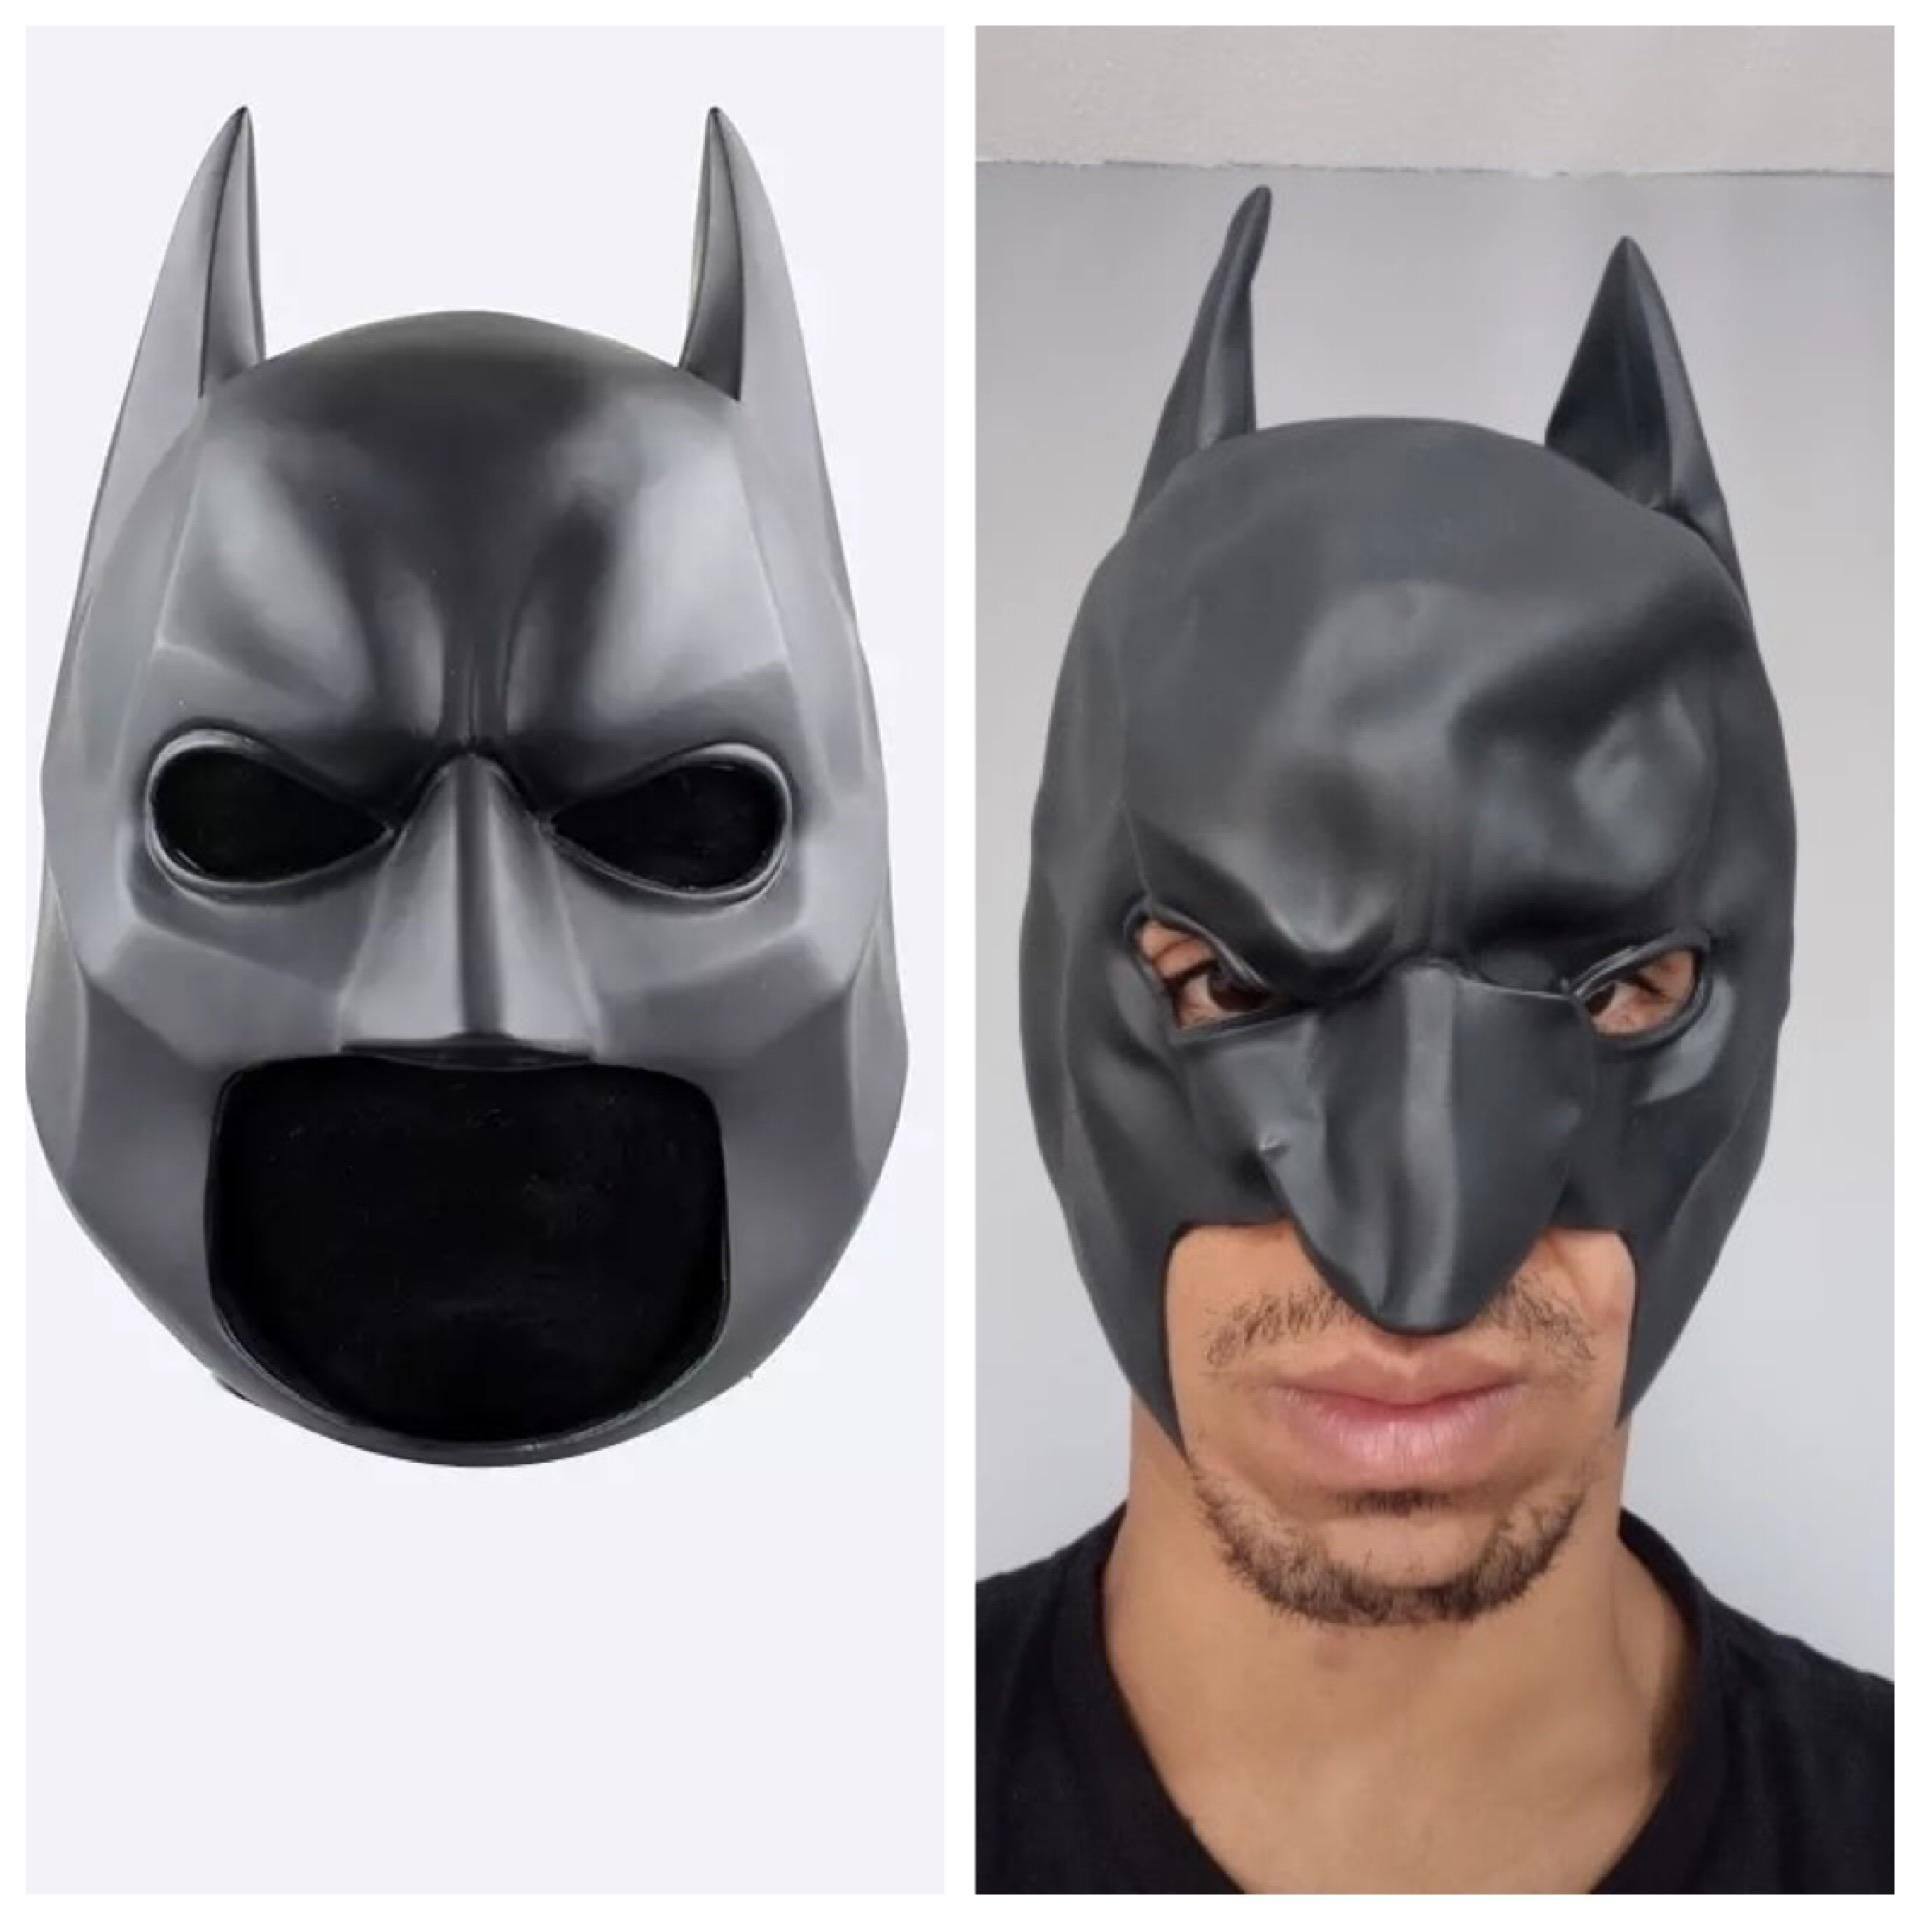 Actual pictures from AliExpress. What you expect vs what arrives.